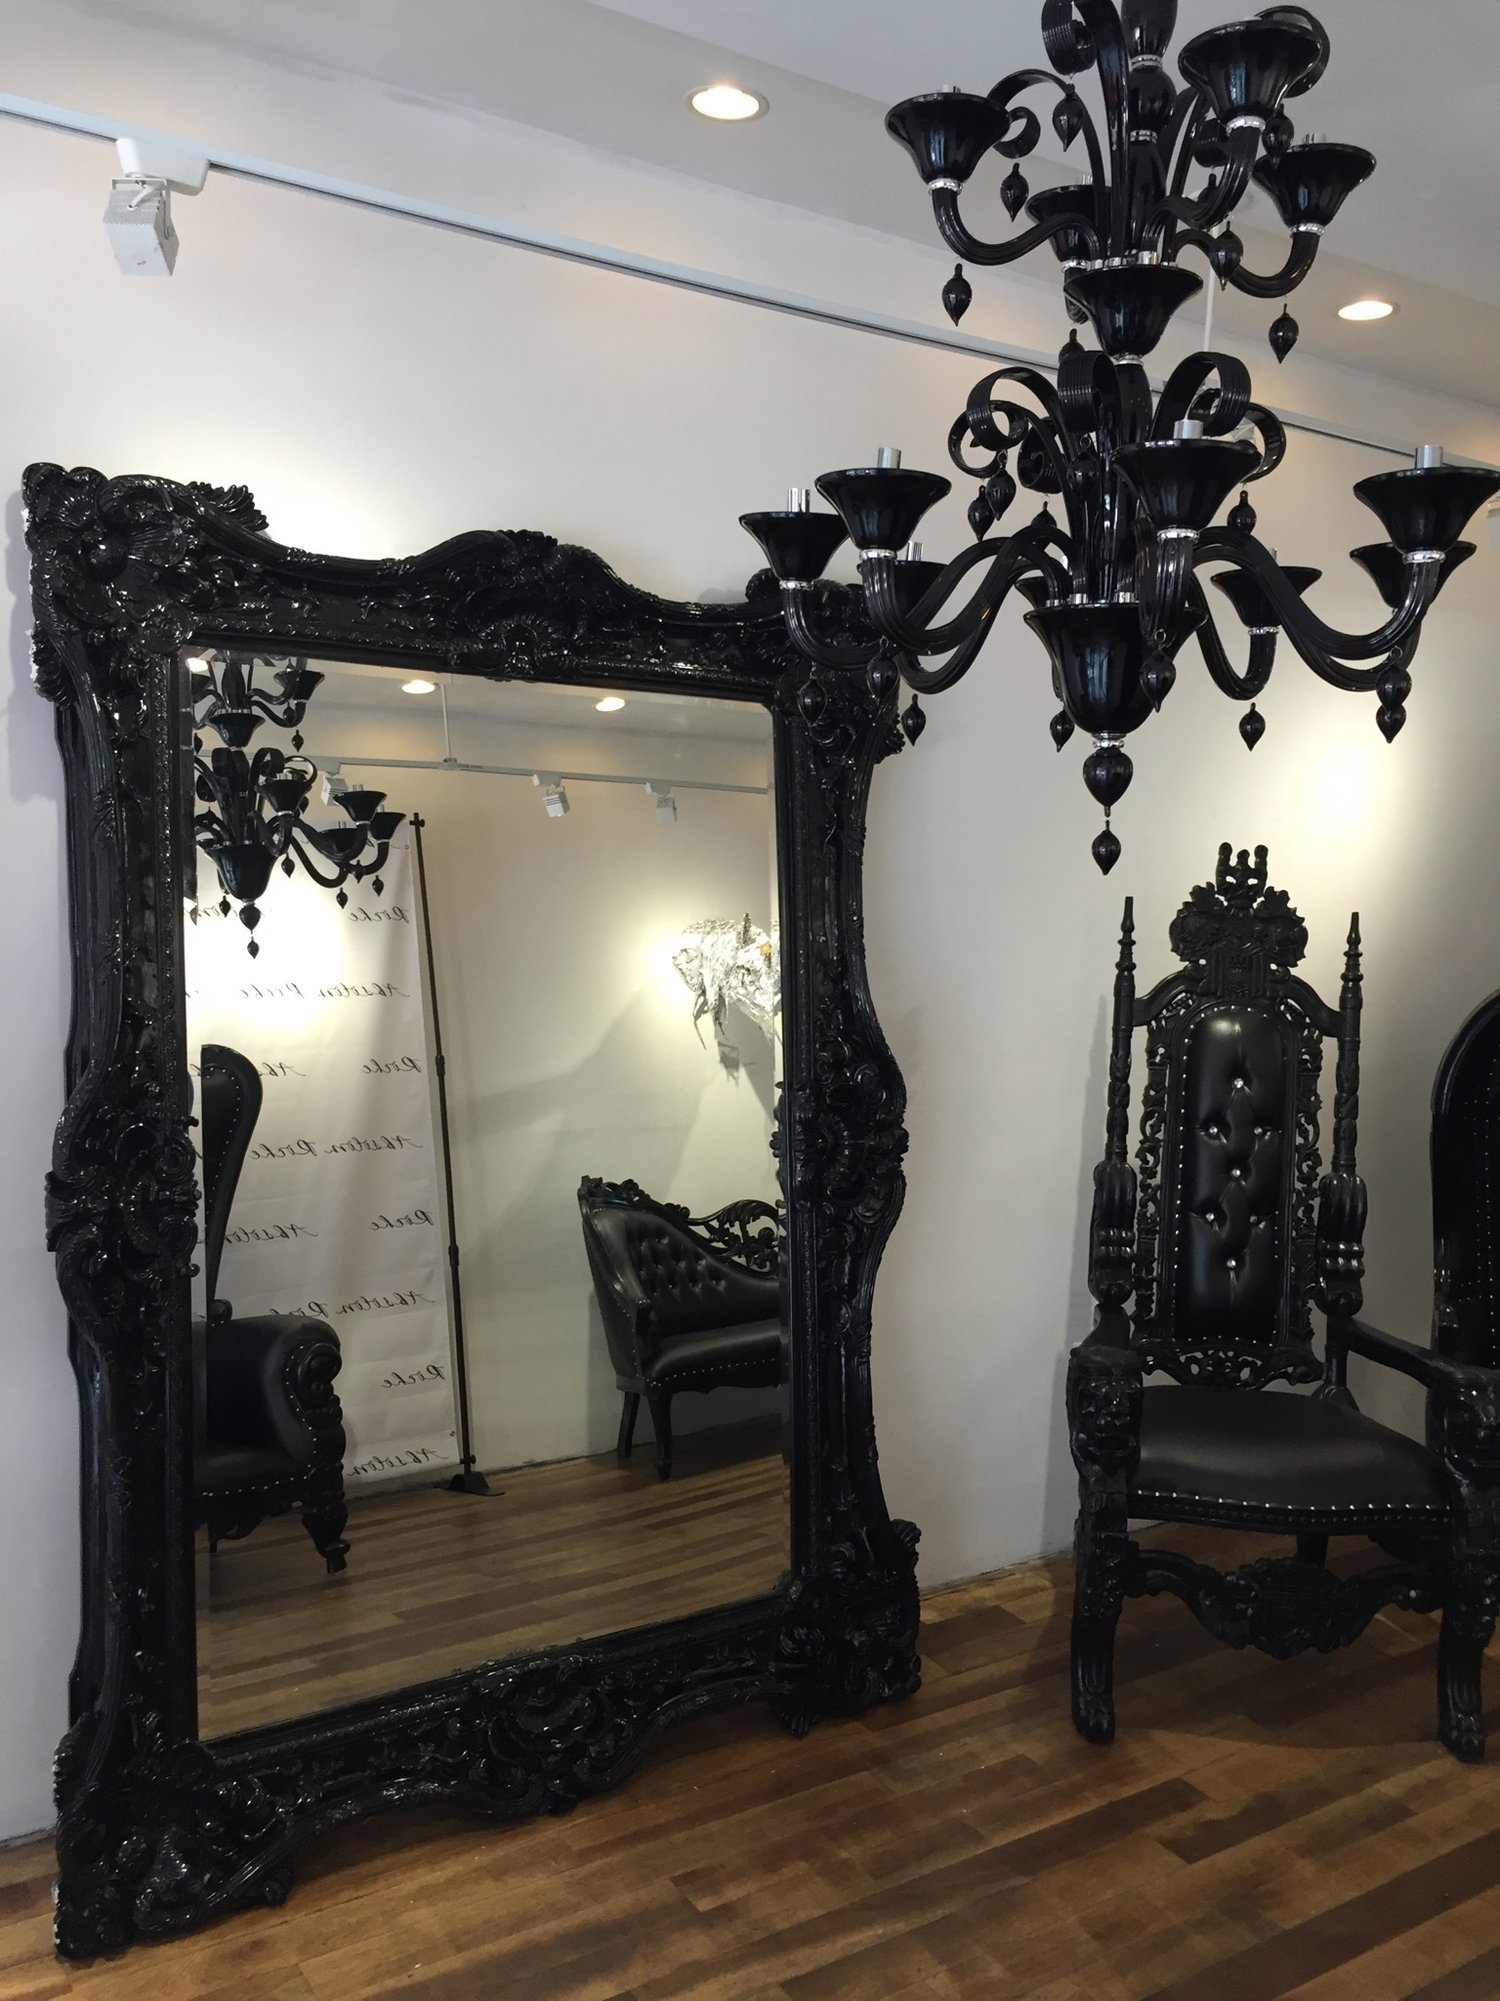 Nyc Floor Model Baroque Ornate Carved Mirror Black Victorian Throughout Black Ornate Mirrors (Image 9 of 15)